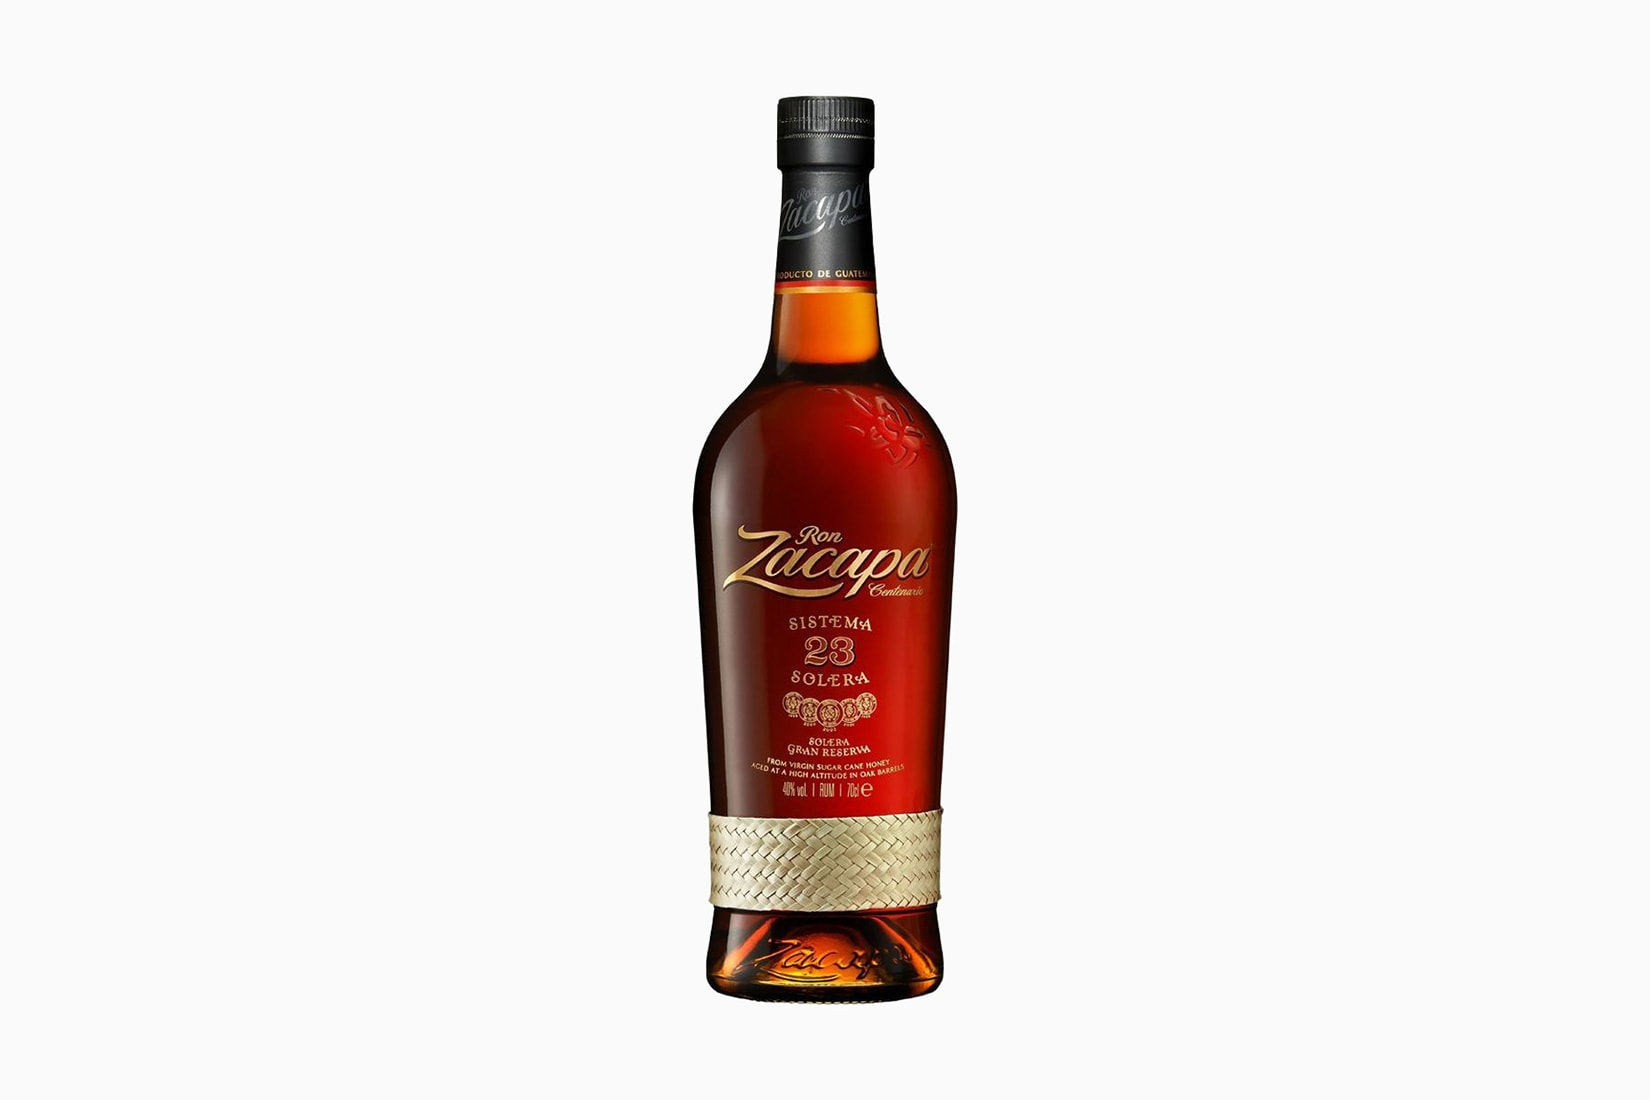 best rum brand ron zacapa review - Luxe Digital